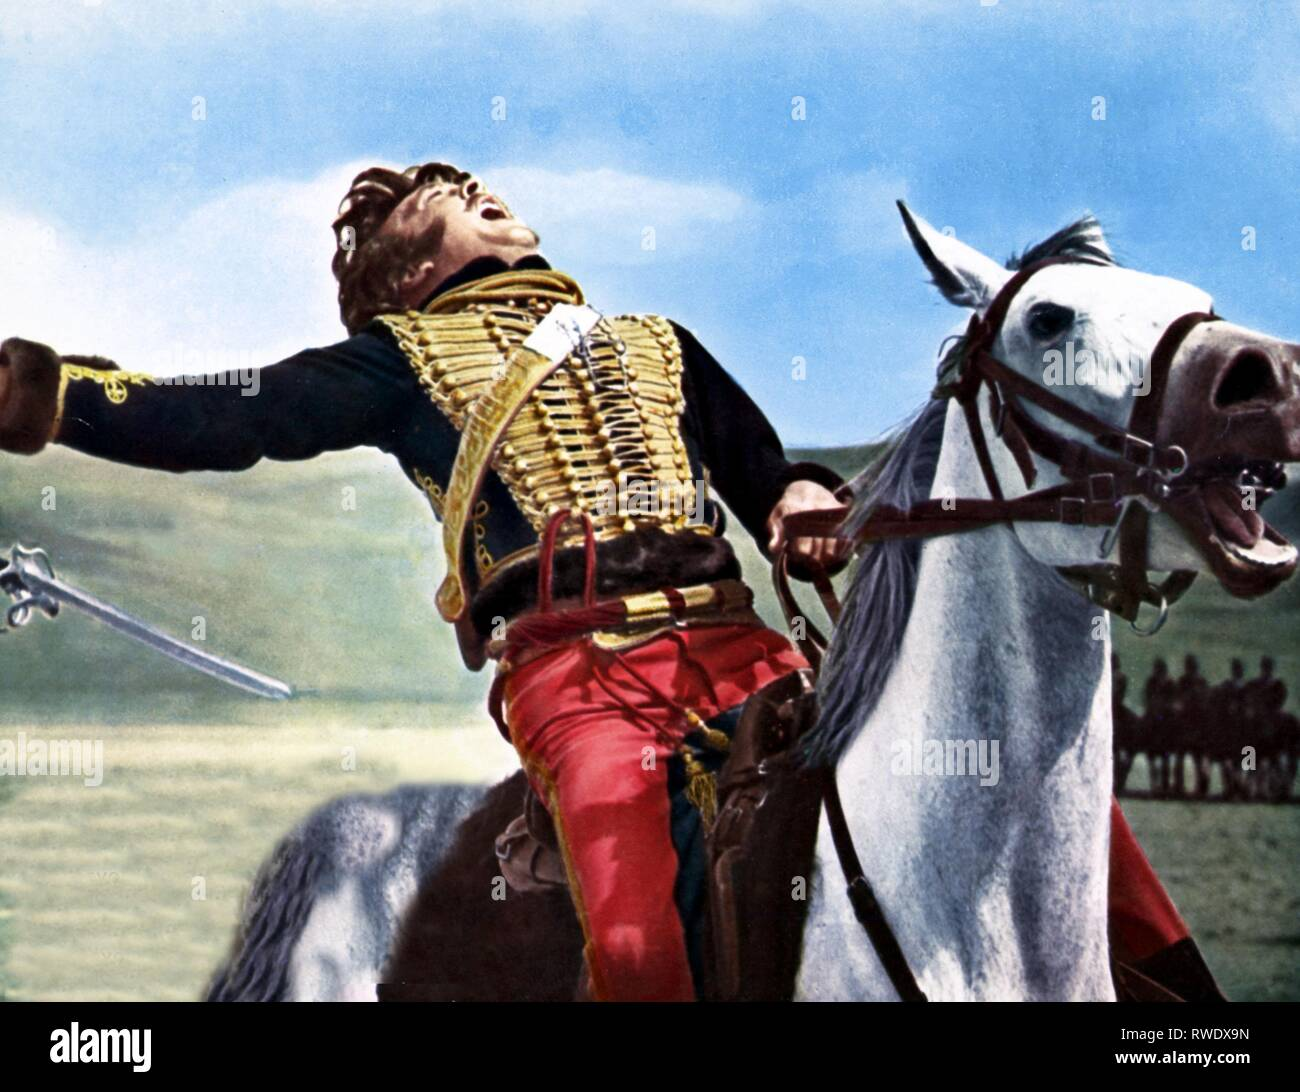 DAVID HEMMINGS, THE CHARGE OF THE LIGHT BRIGADE, 1968 - Stock Image